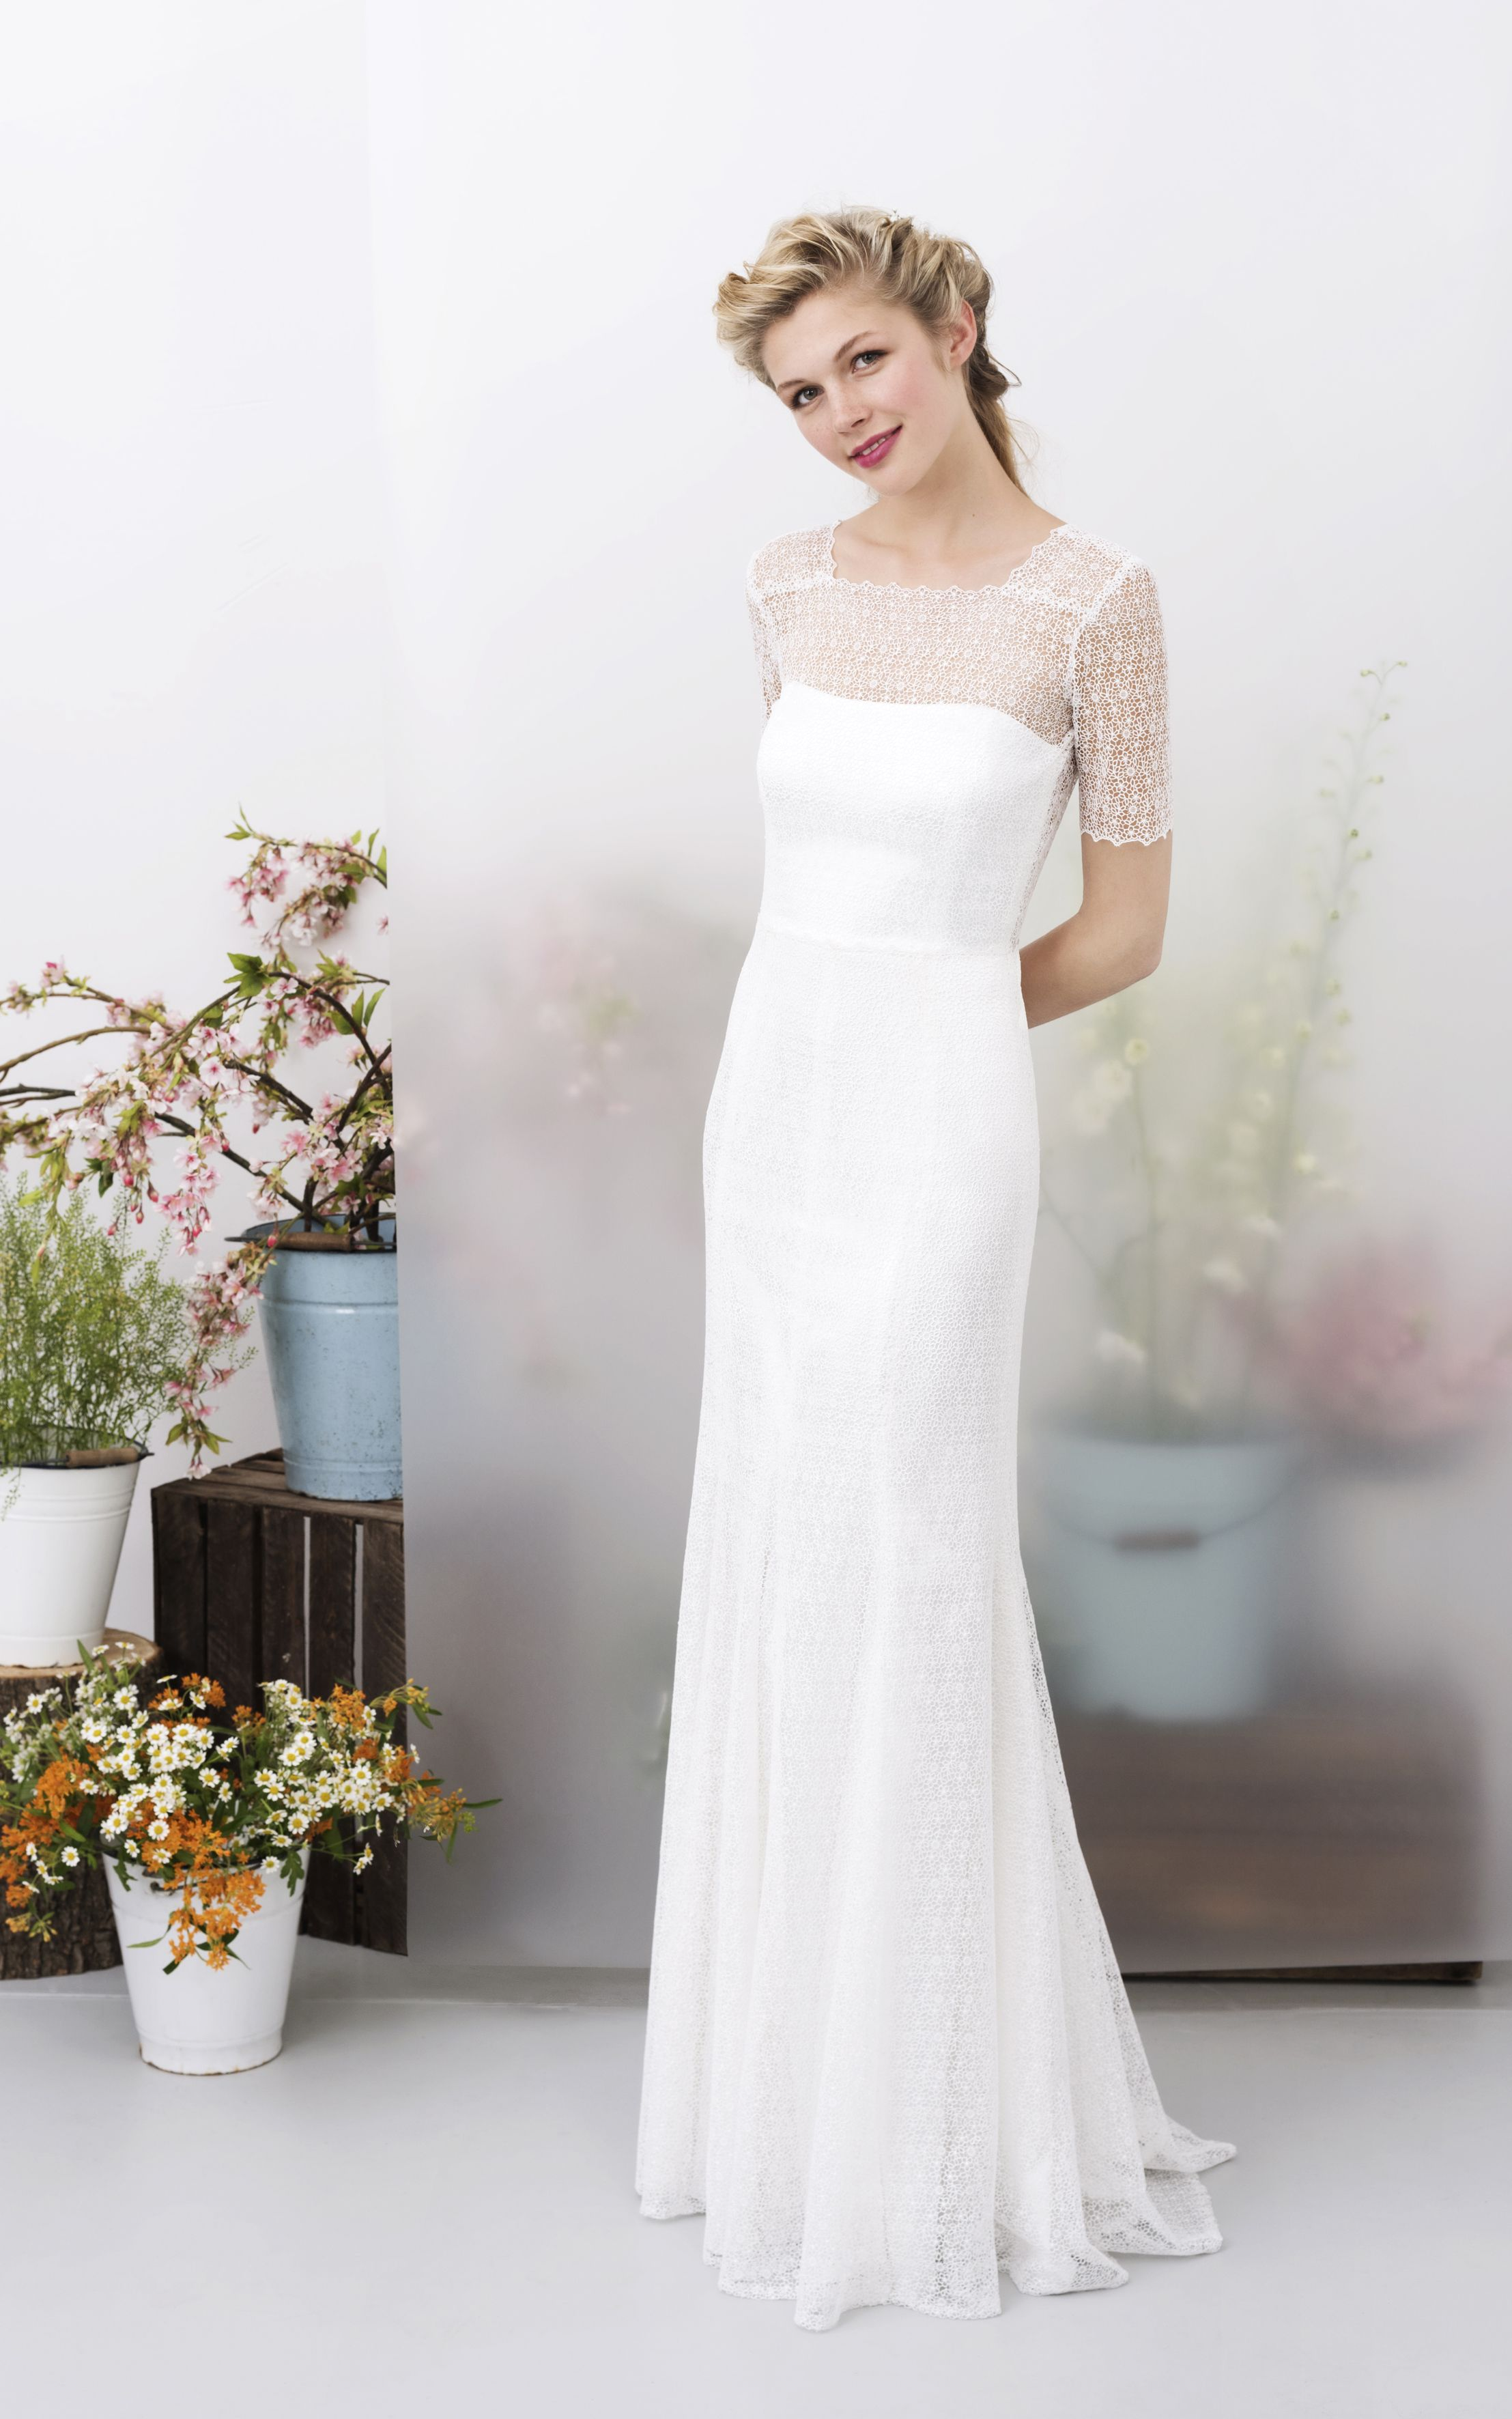 kisui OUI Collection Bridal Style: jarla, Brautkleid, Weddingdress ...